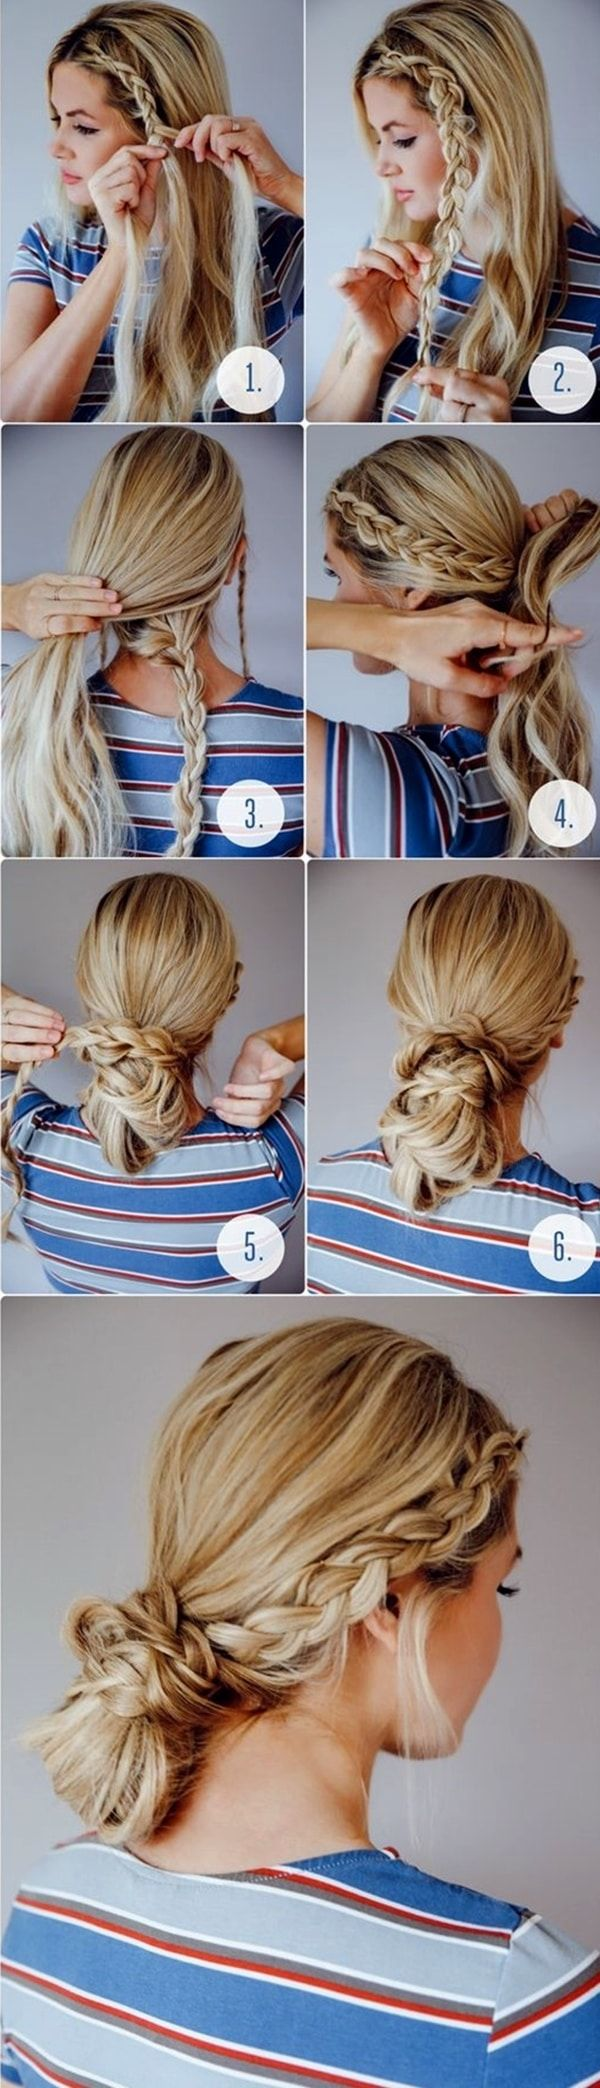 100 quick hairstyle tutorials for office women | quick hairstyles